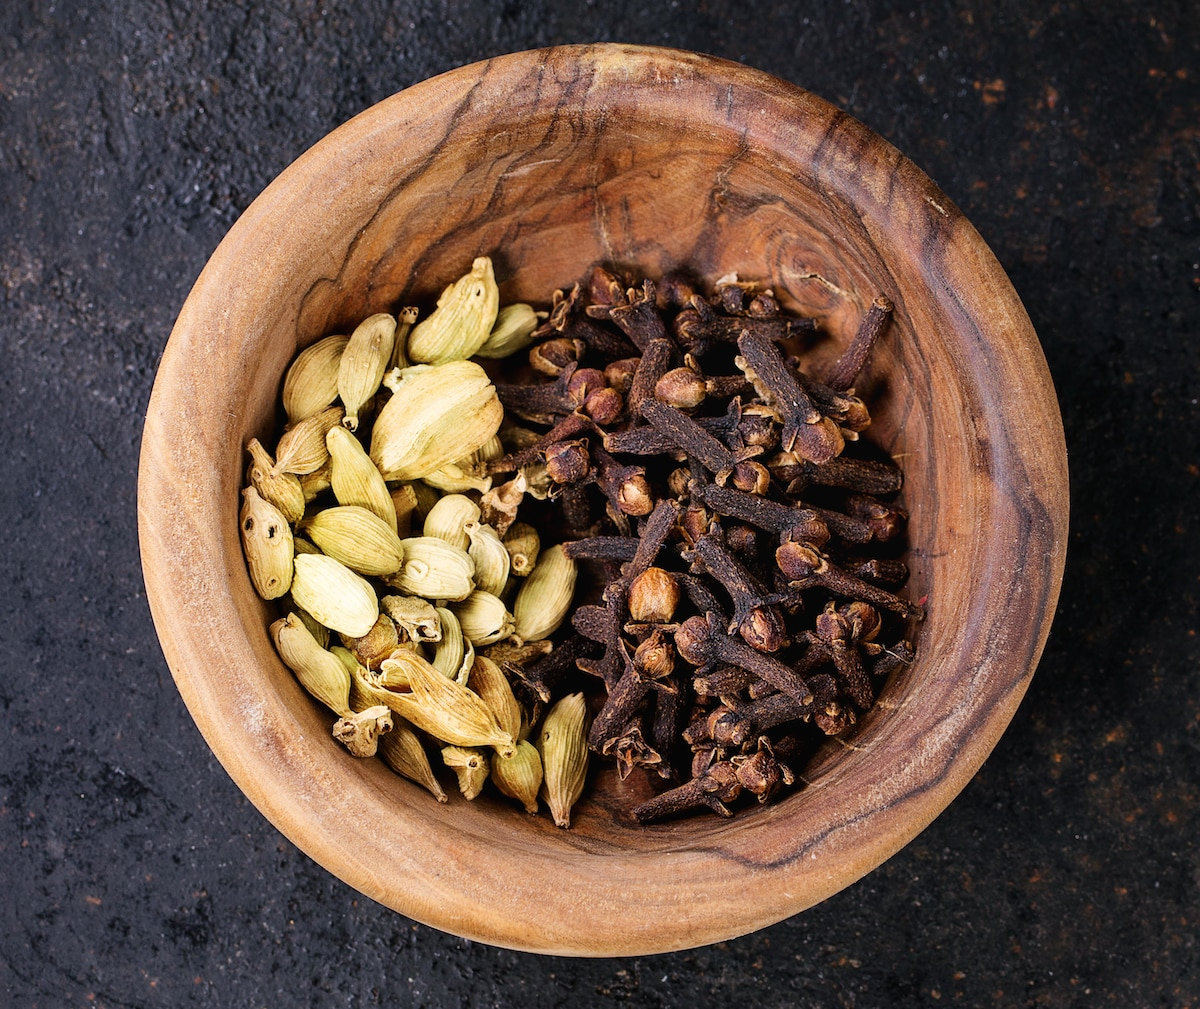 Cardamom vs cloves